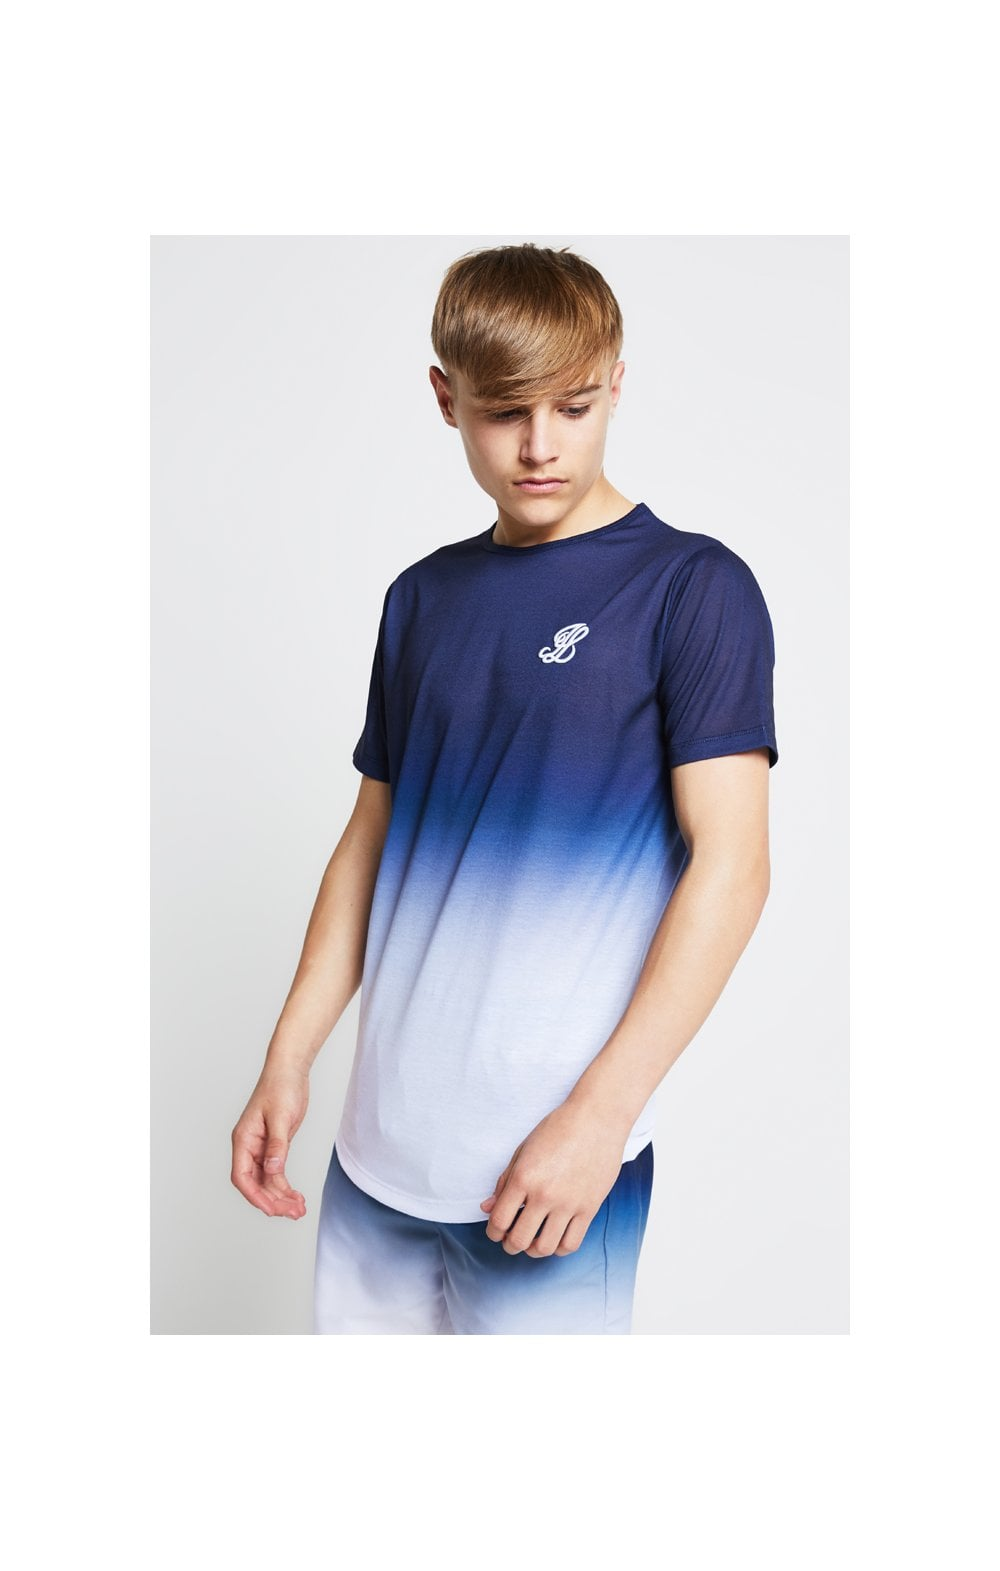 Load image into Gallery viewer, Illusive London Fade Tee - Navy & White